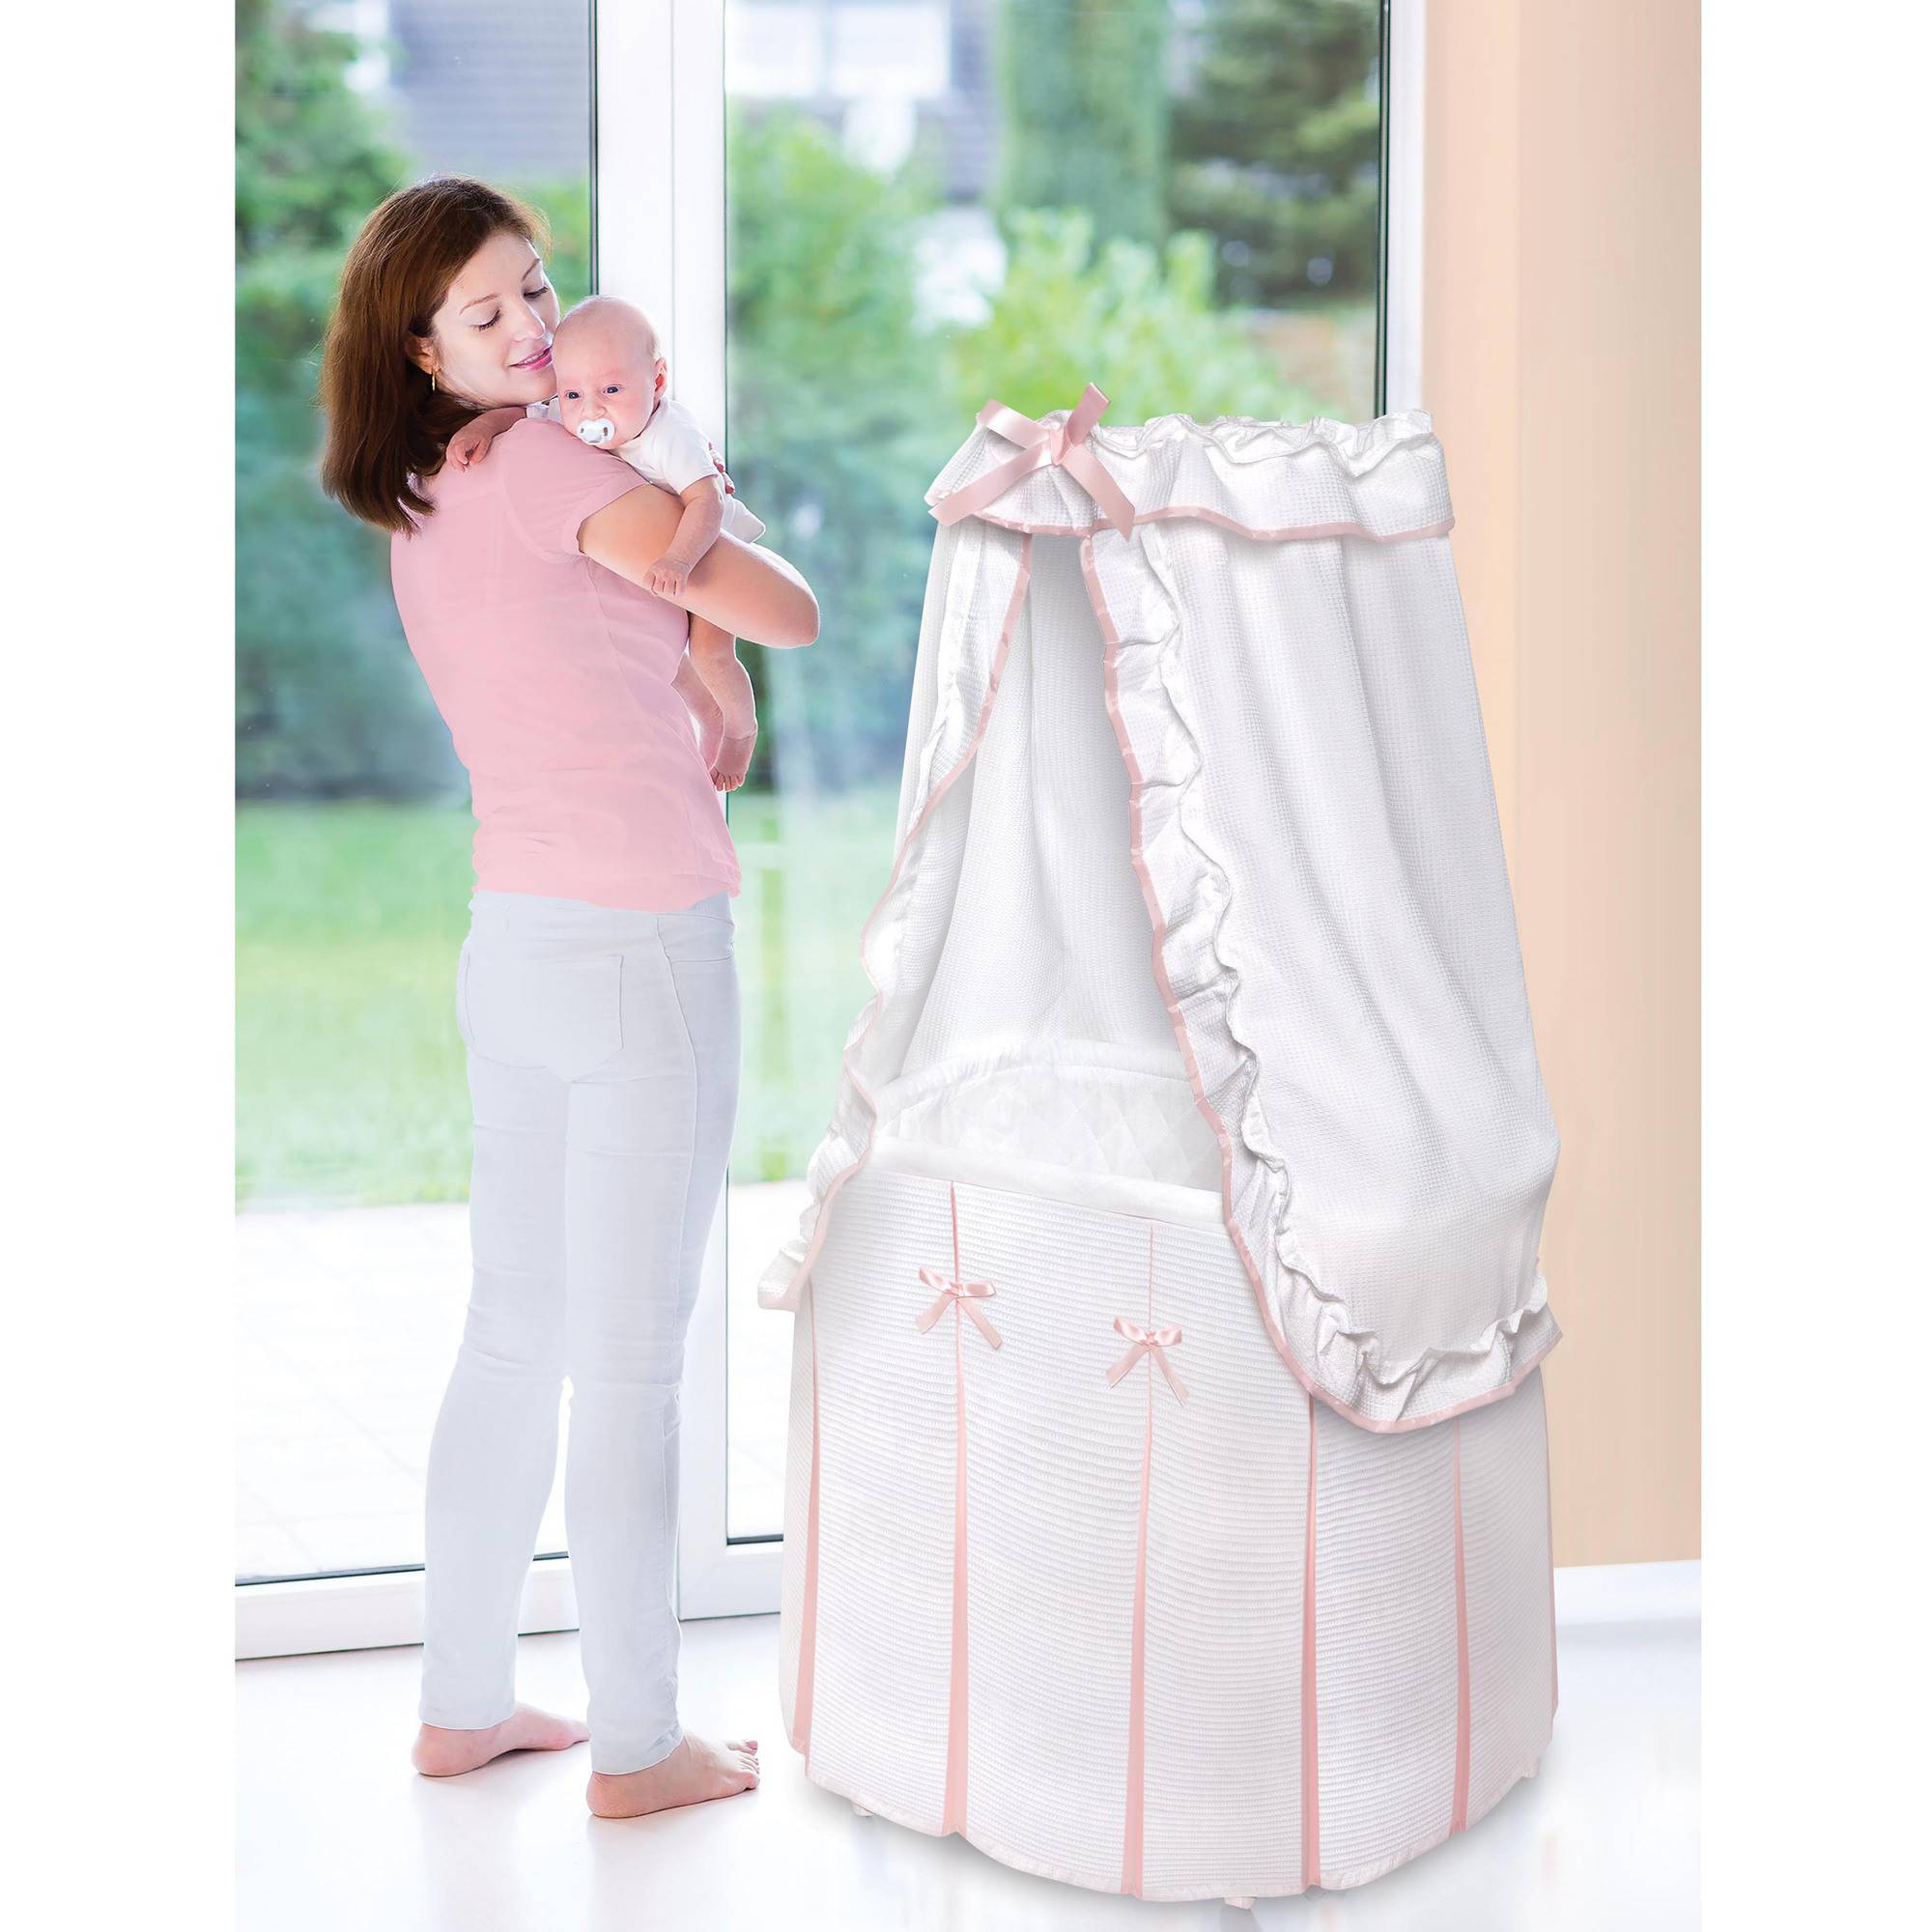 Badger Basket Majesty Baby Bassinet with Canopy, White and Pink Bedding